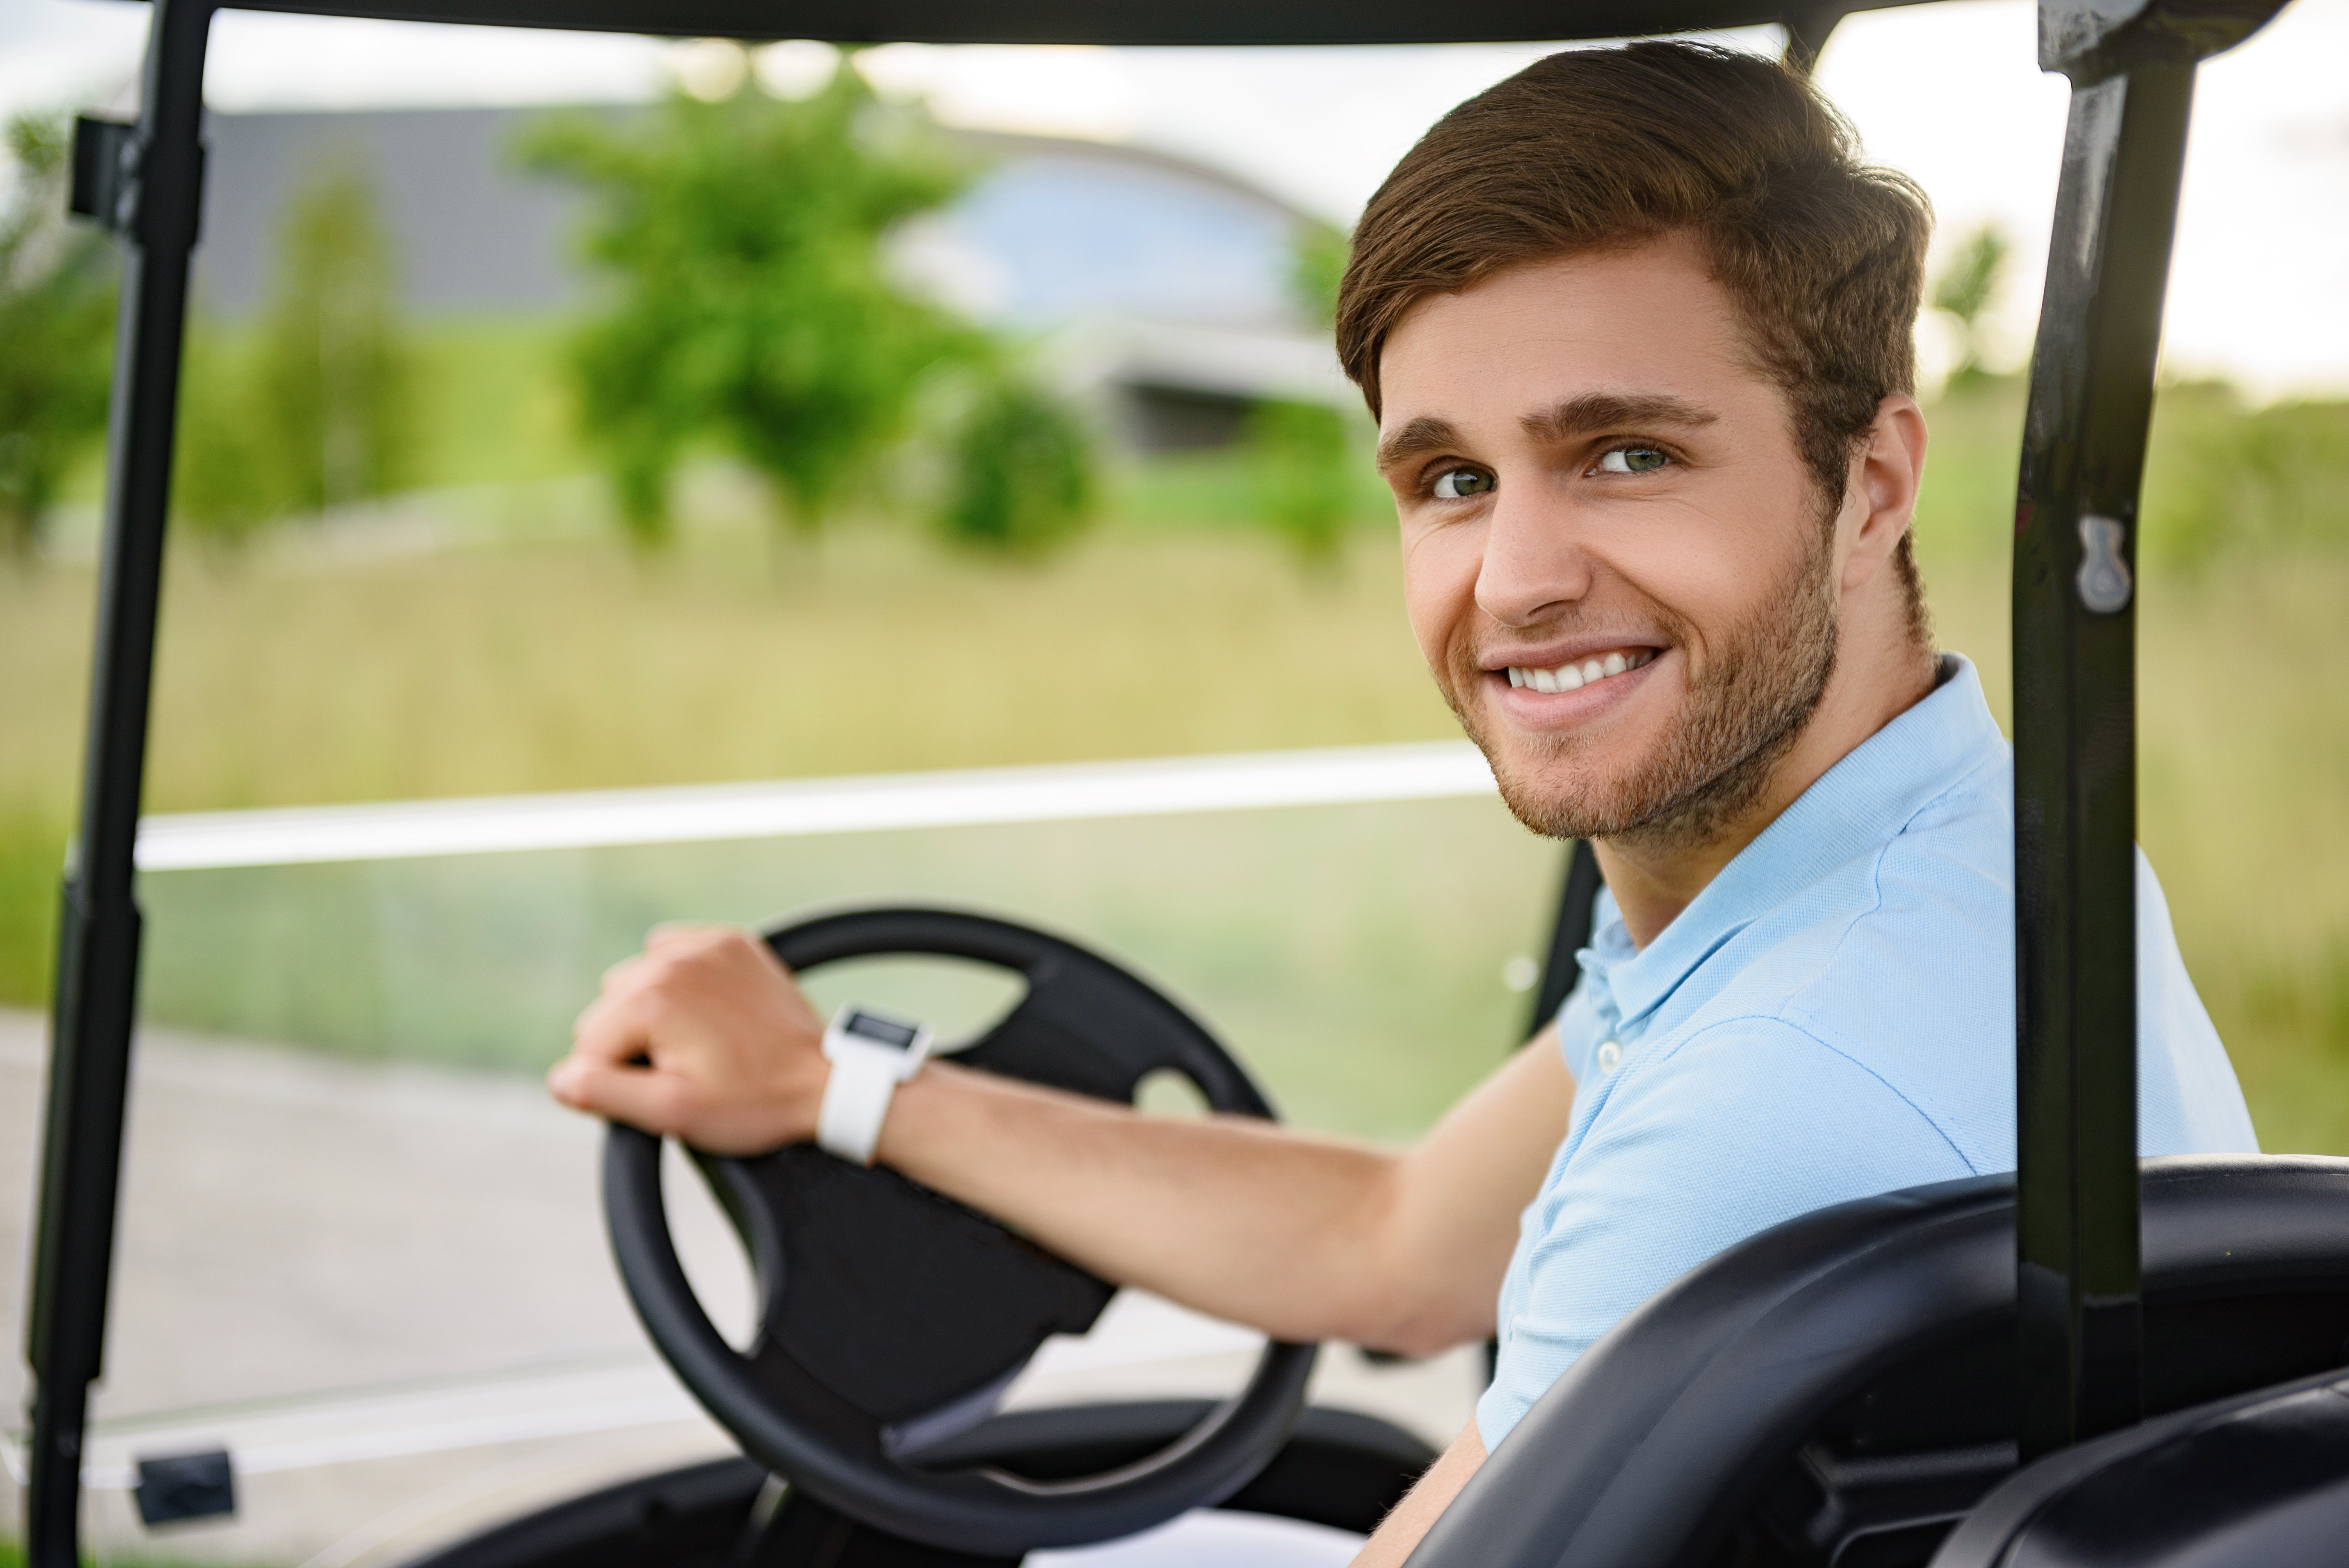 golf cart safety practices